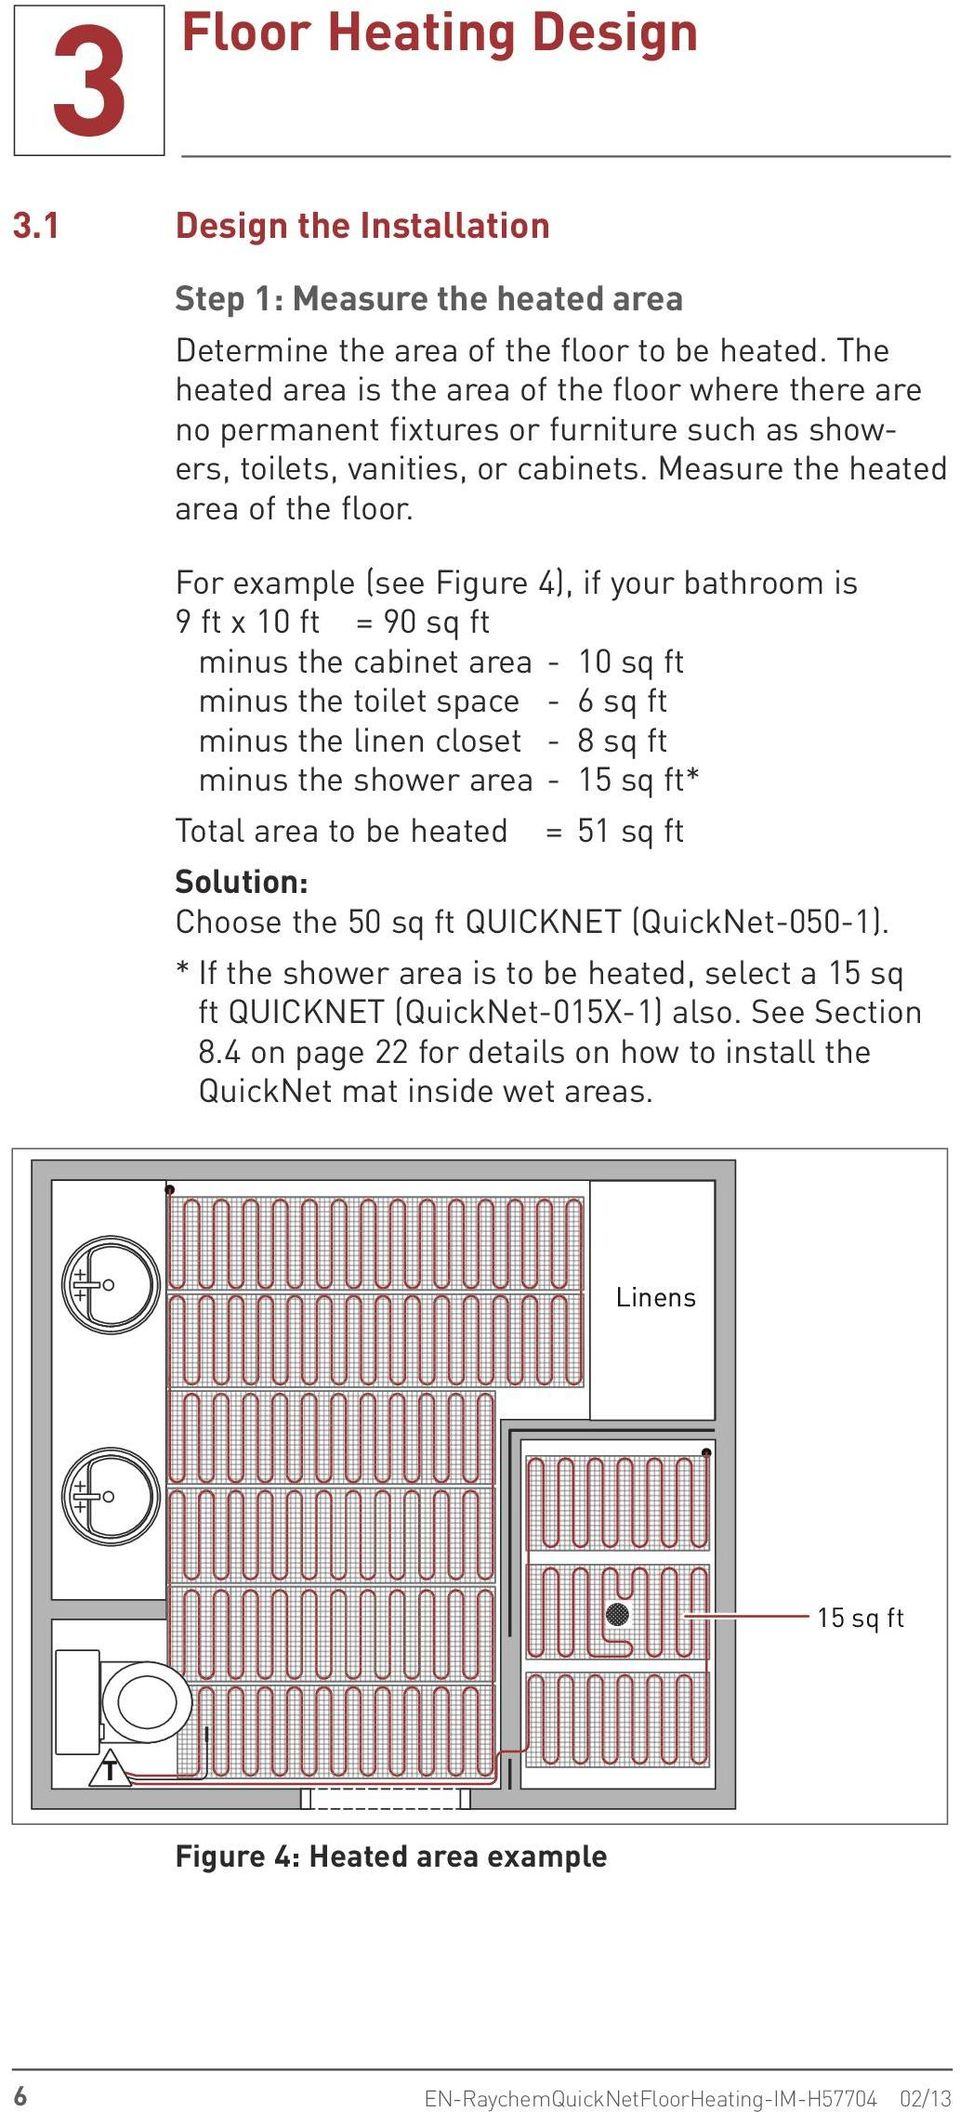 For example (see Figure 4), if your bathroom is 9 ft x 10 ft = 90 sq ft minus the cabinet area - 10 sq ft minus the toilet space - 6 sq ft minus the linen closet - 8 sq ft minus the shower area - 15